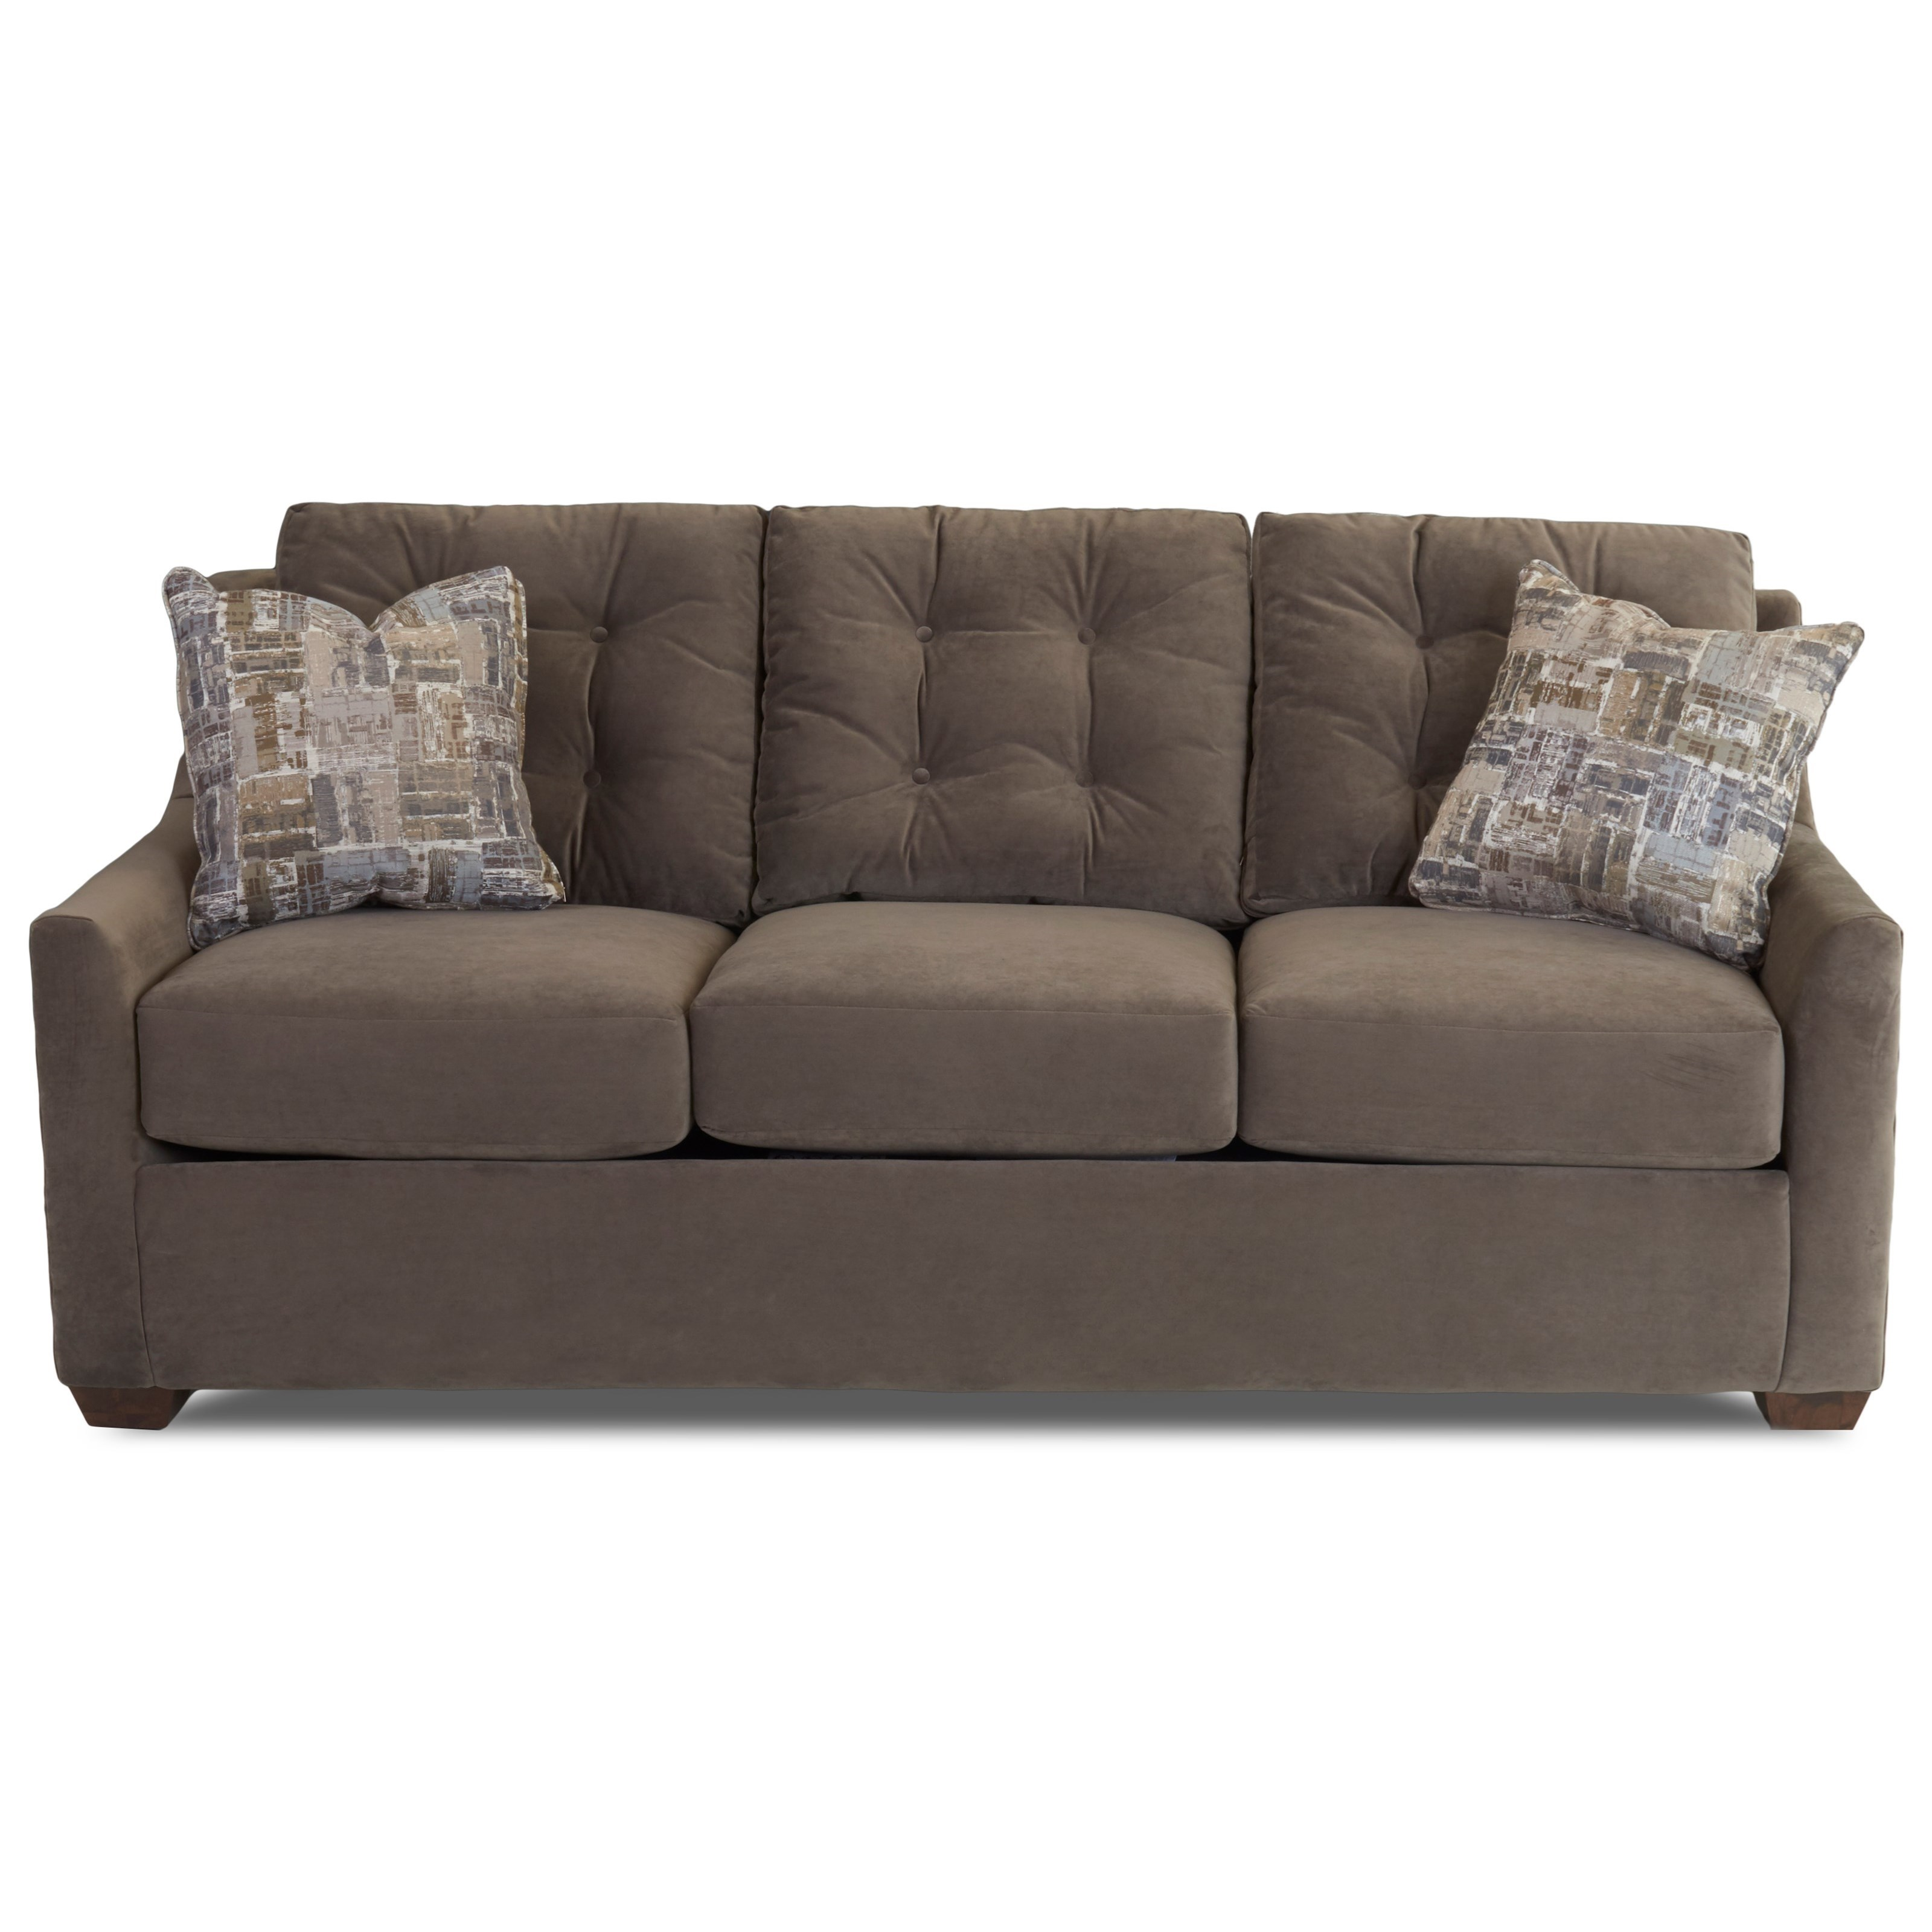 Grayton Queen Dreamquest Sleeper Sofa by Klaussner at Johnny Janosik